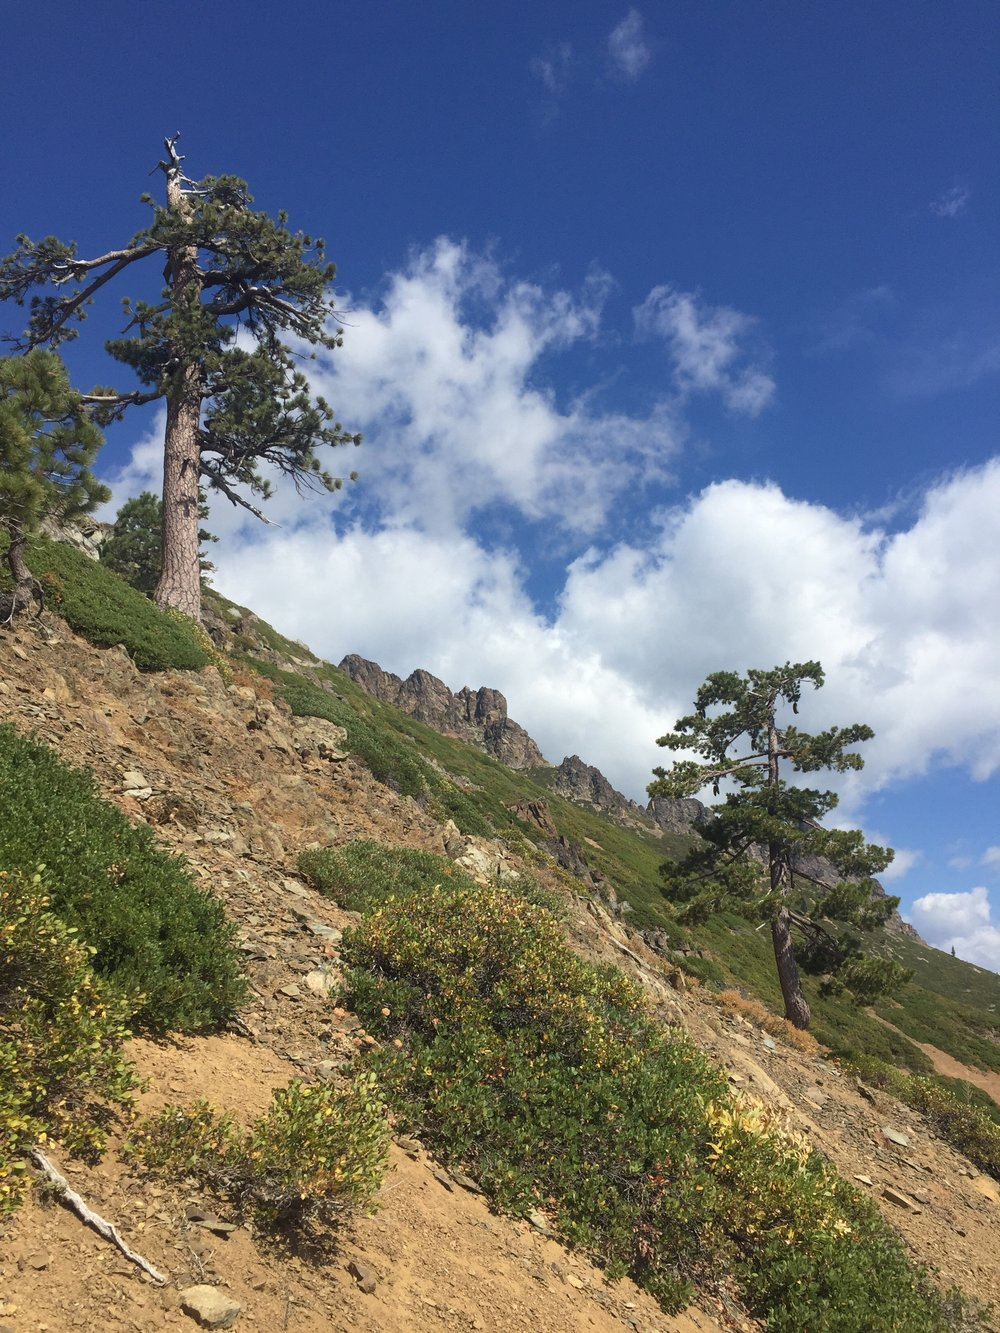 Tenacious Jeffrey and Sugar pines on the slopes of the Sierra Buttes